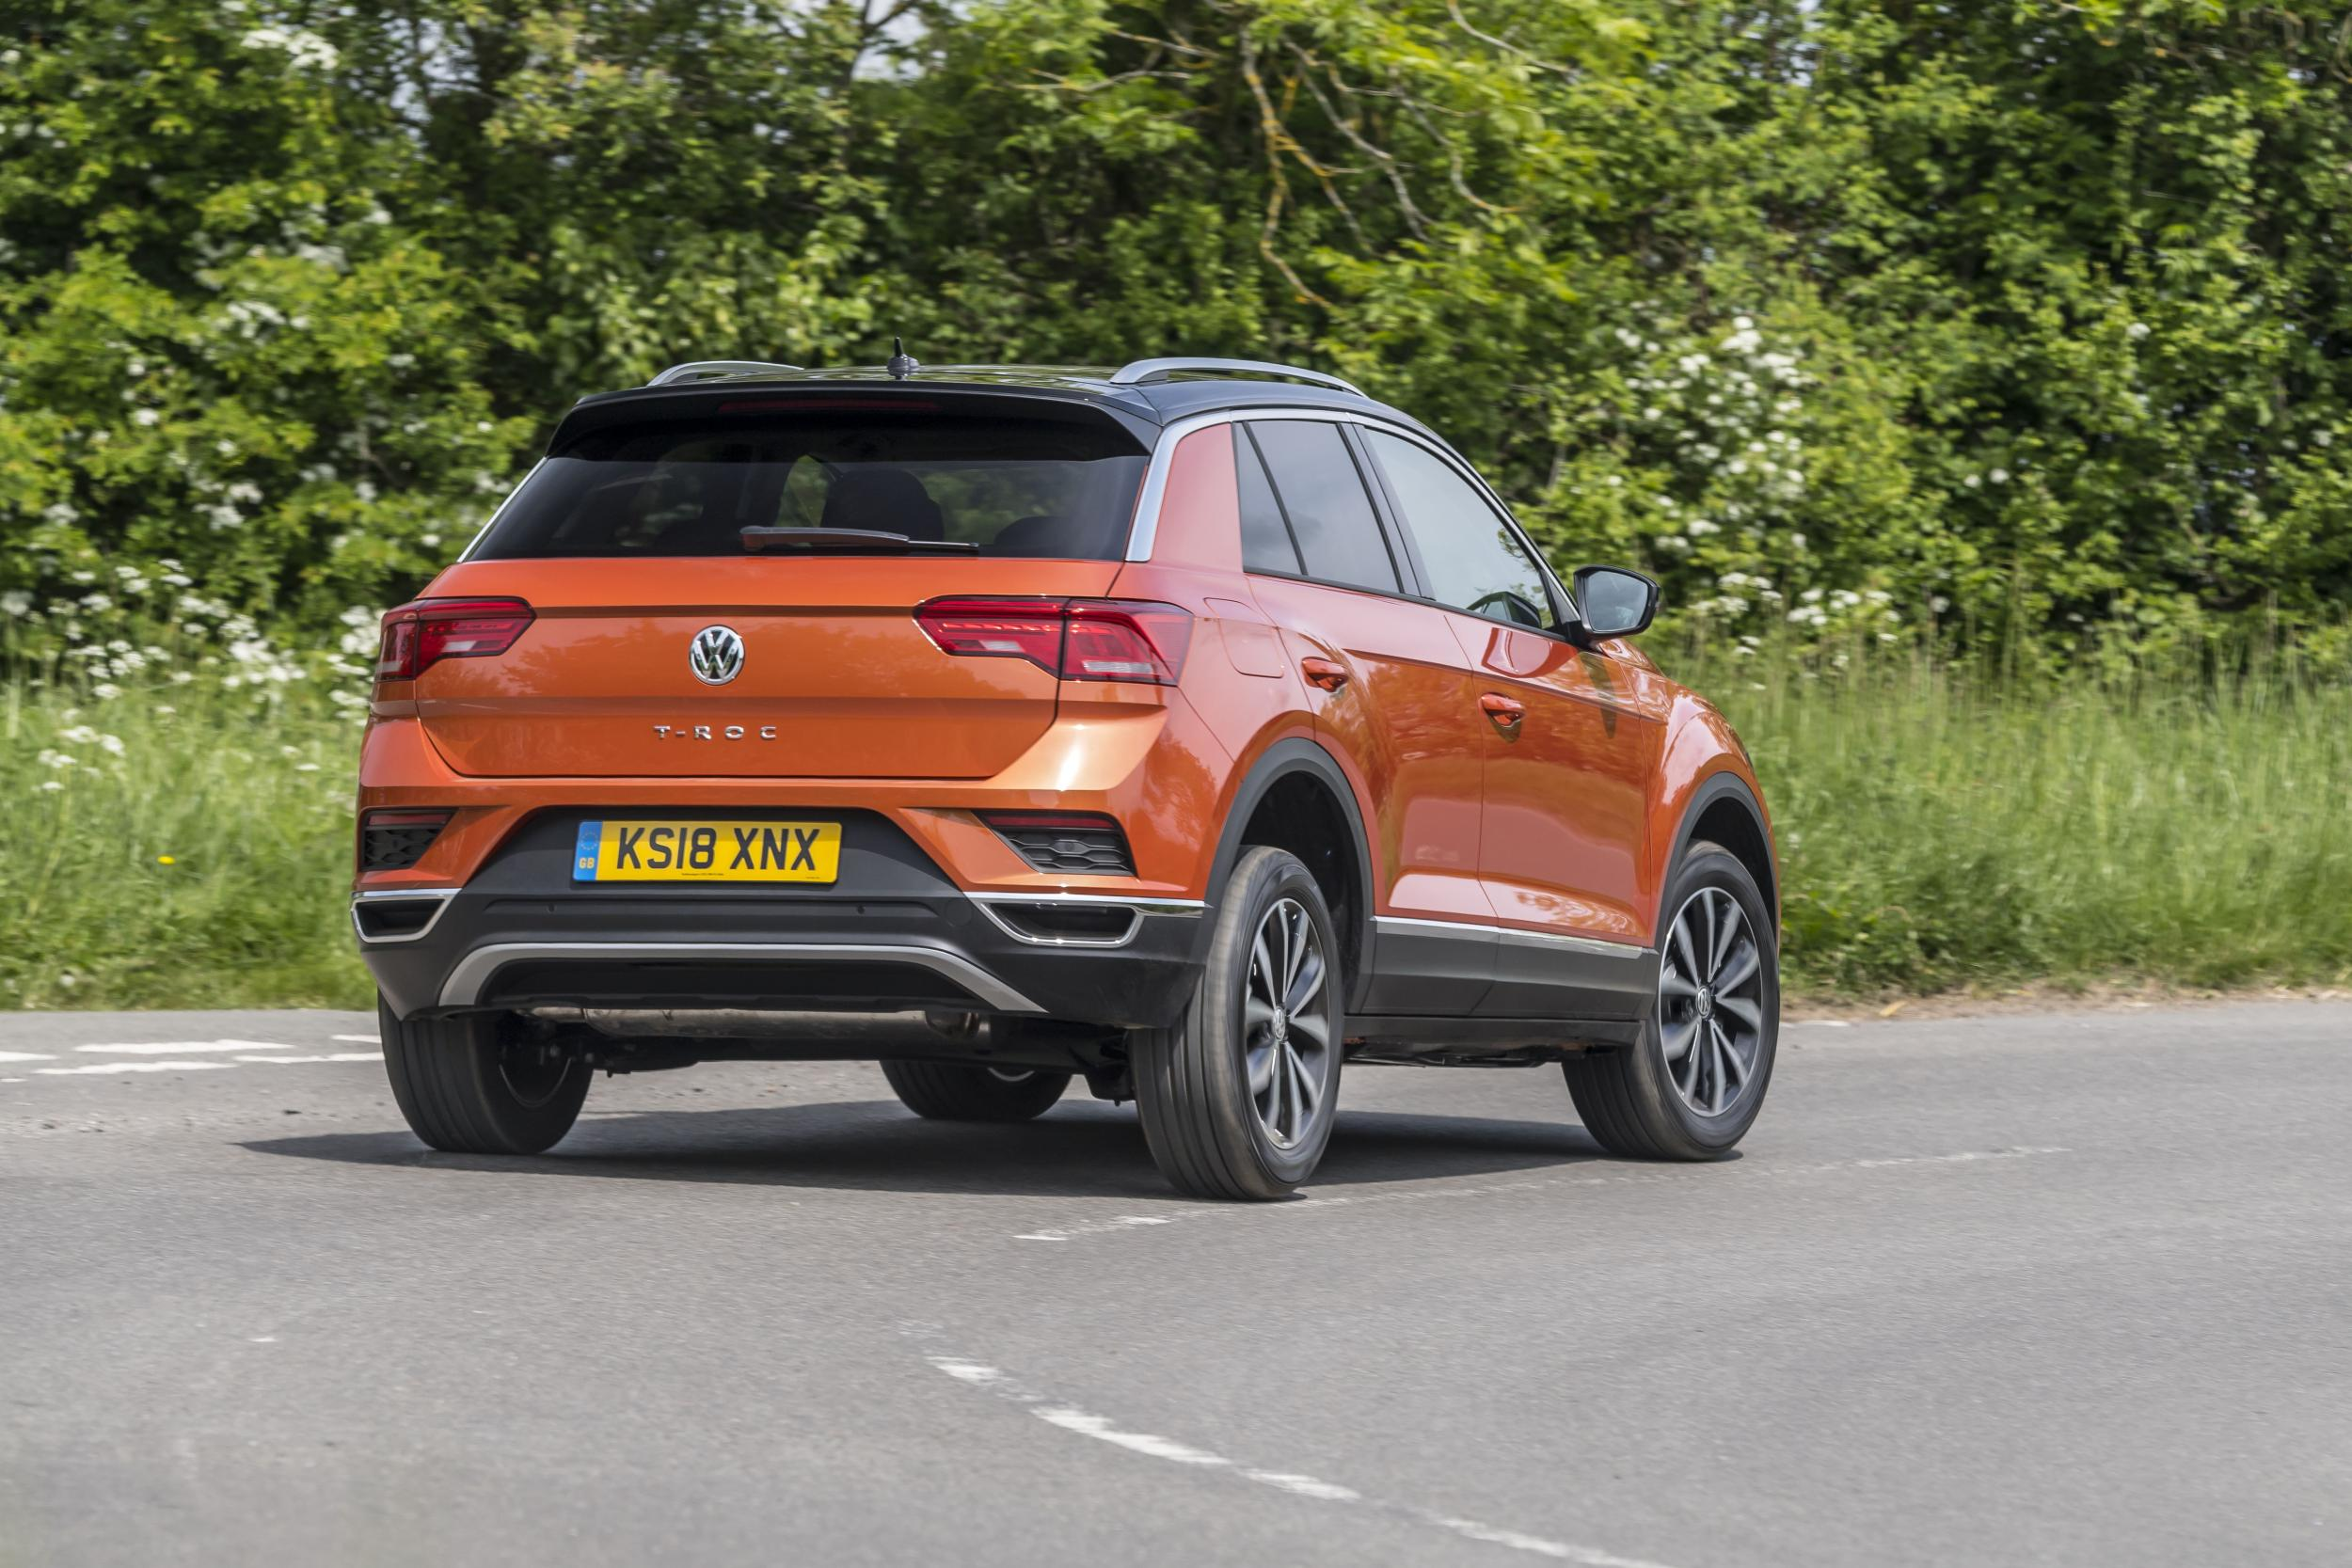 Volkswagen T-Roc review: A phenomenon to drive, but does the world